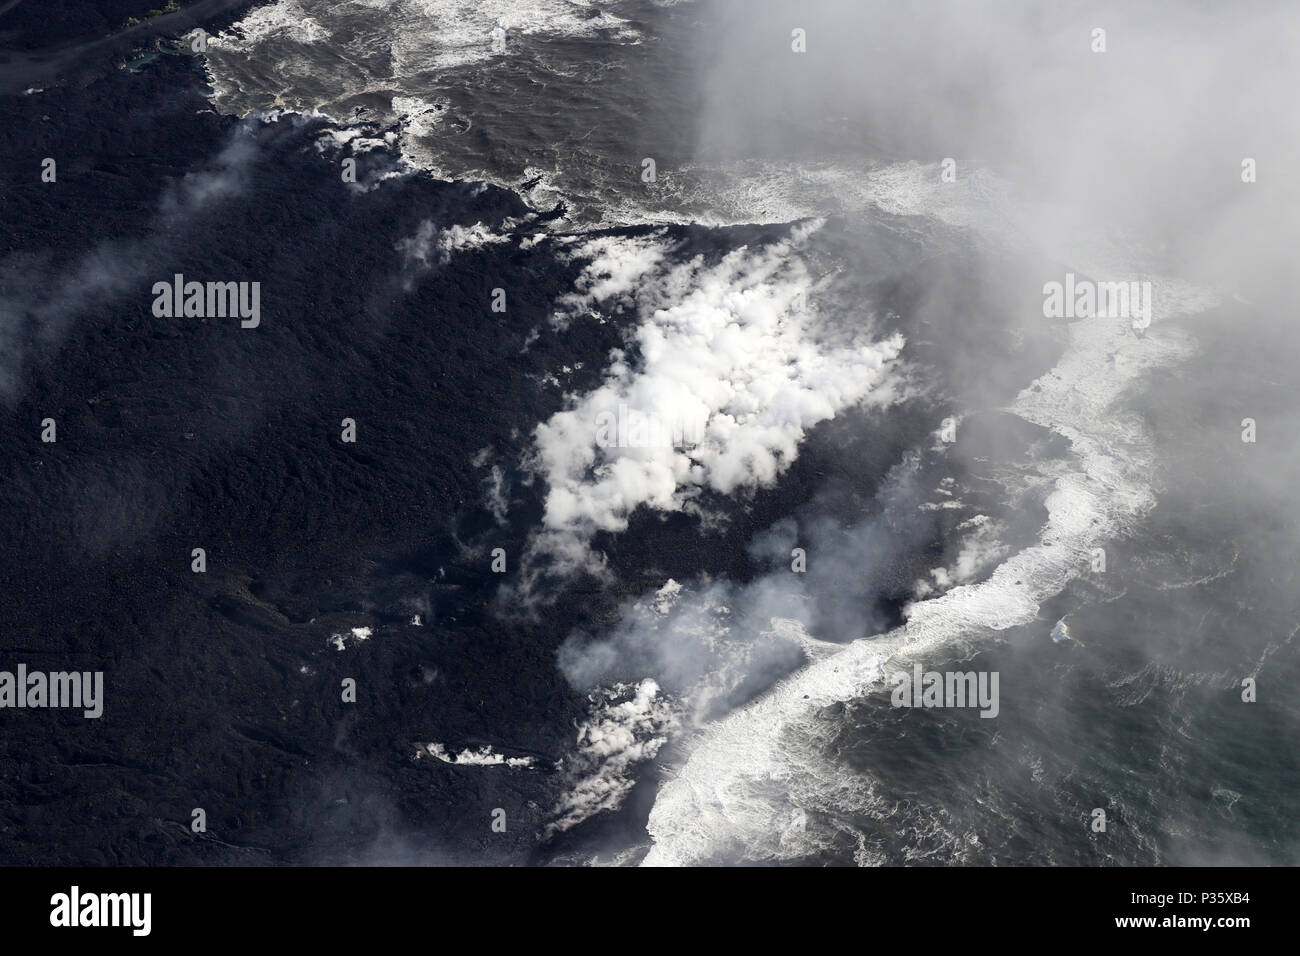 Ocean Entry of volcanic eruption of Kilauea volcano, Fissure 8, May 2018 - Stock Image